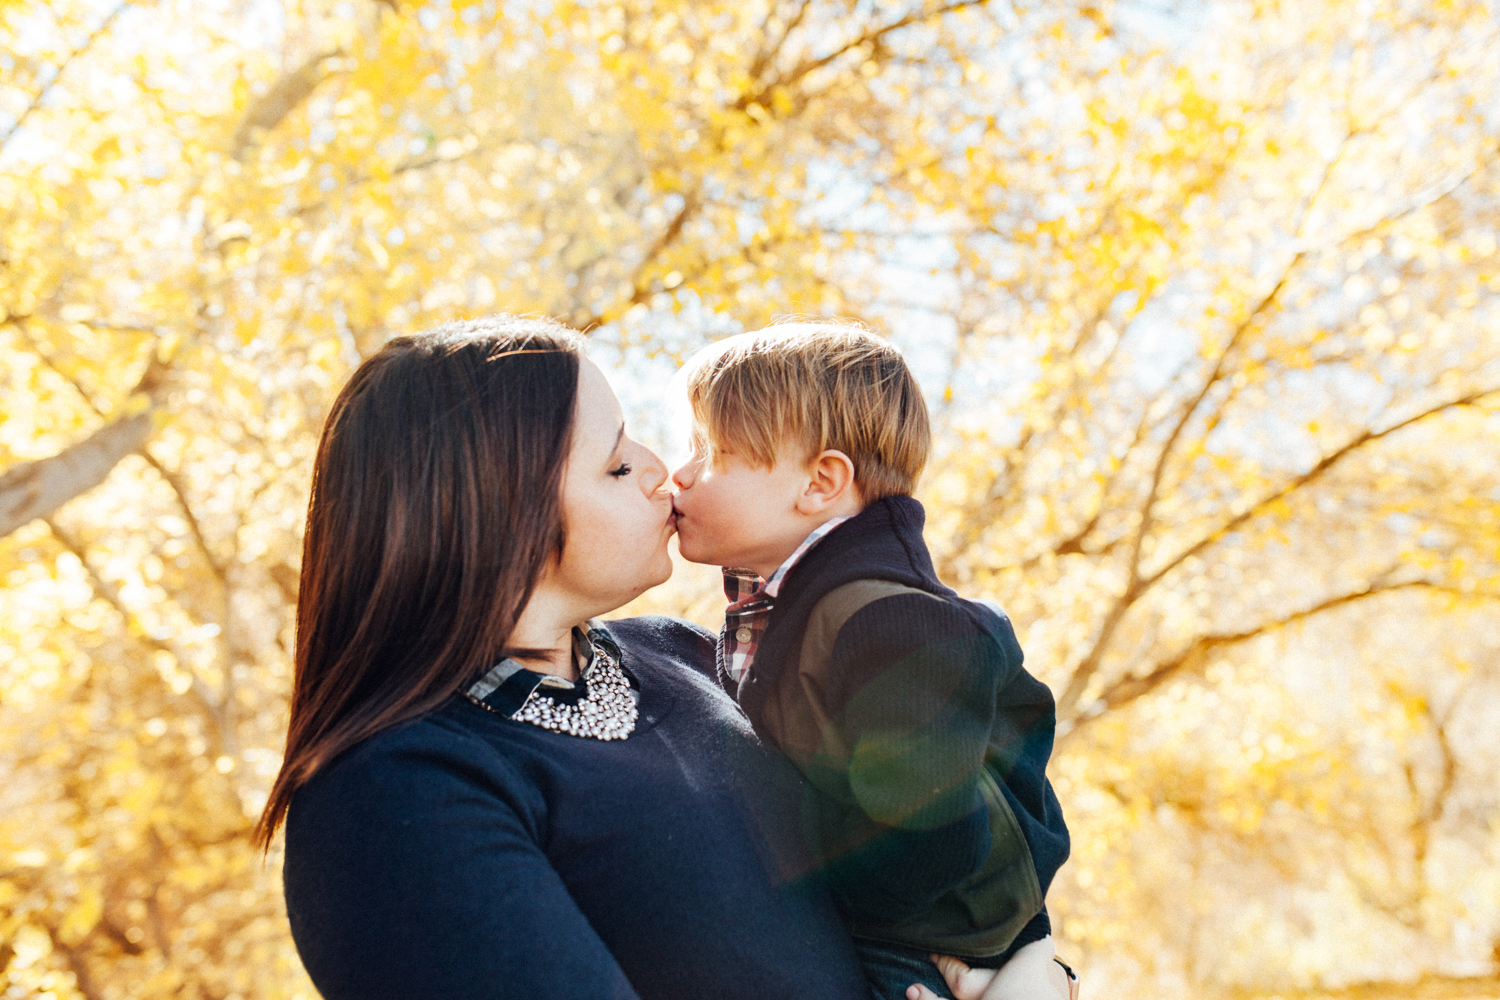 mother-and-son-kissing-in-fall-leaves-with-jen-fairchild-photography-slc-utah